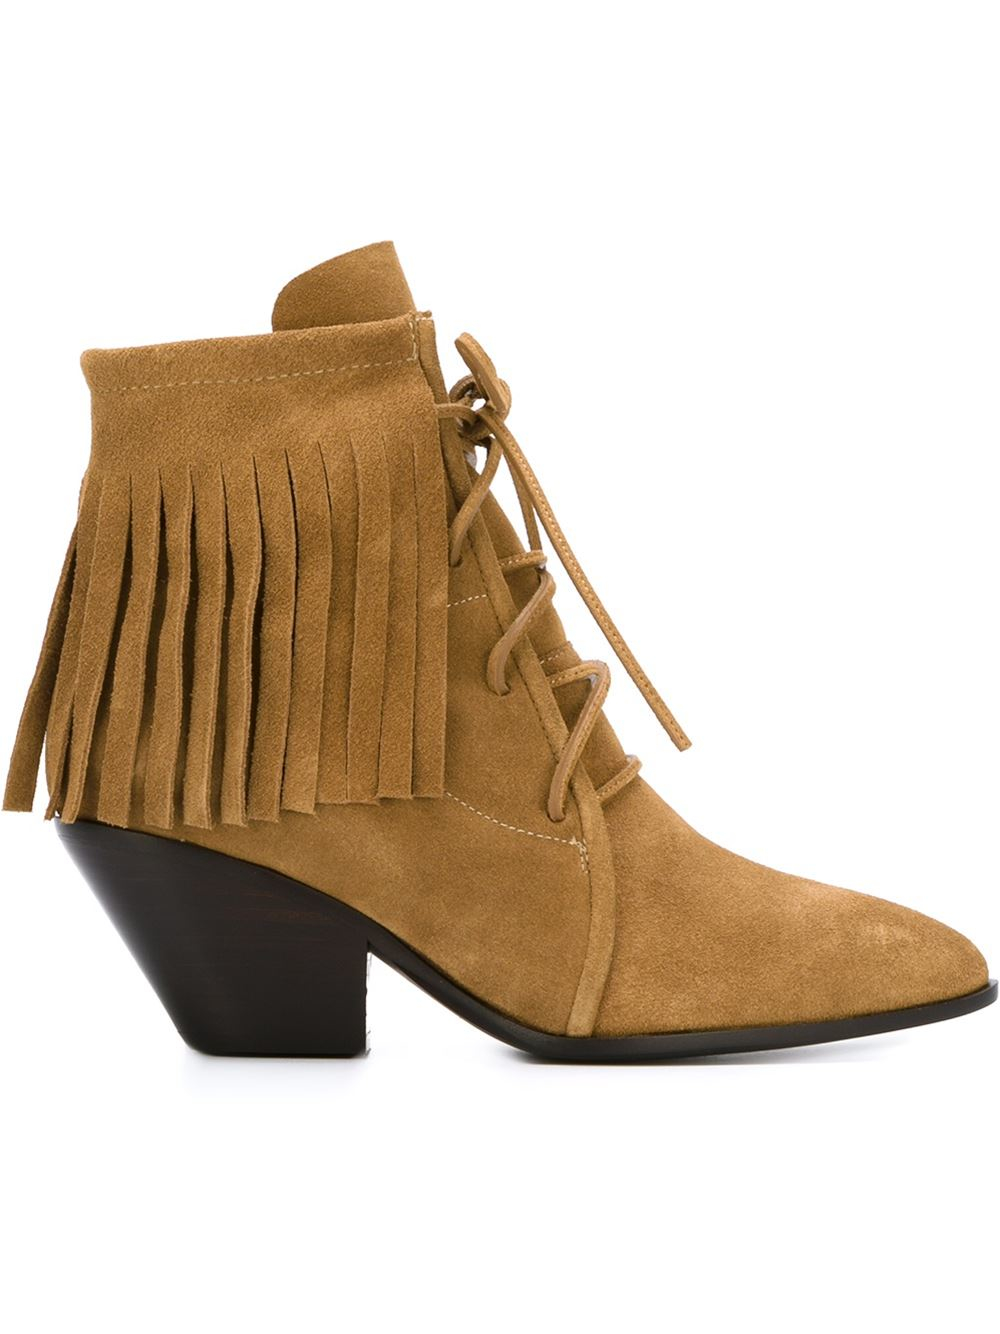 giuseppe zanotti fringed boots in brown lyst